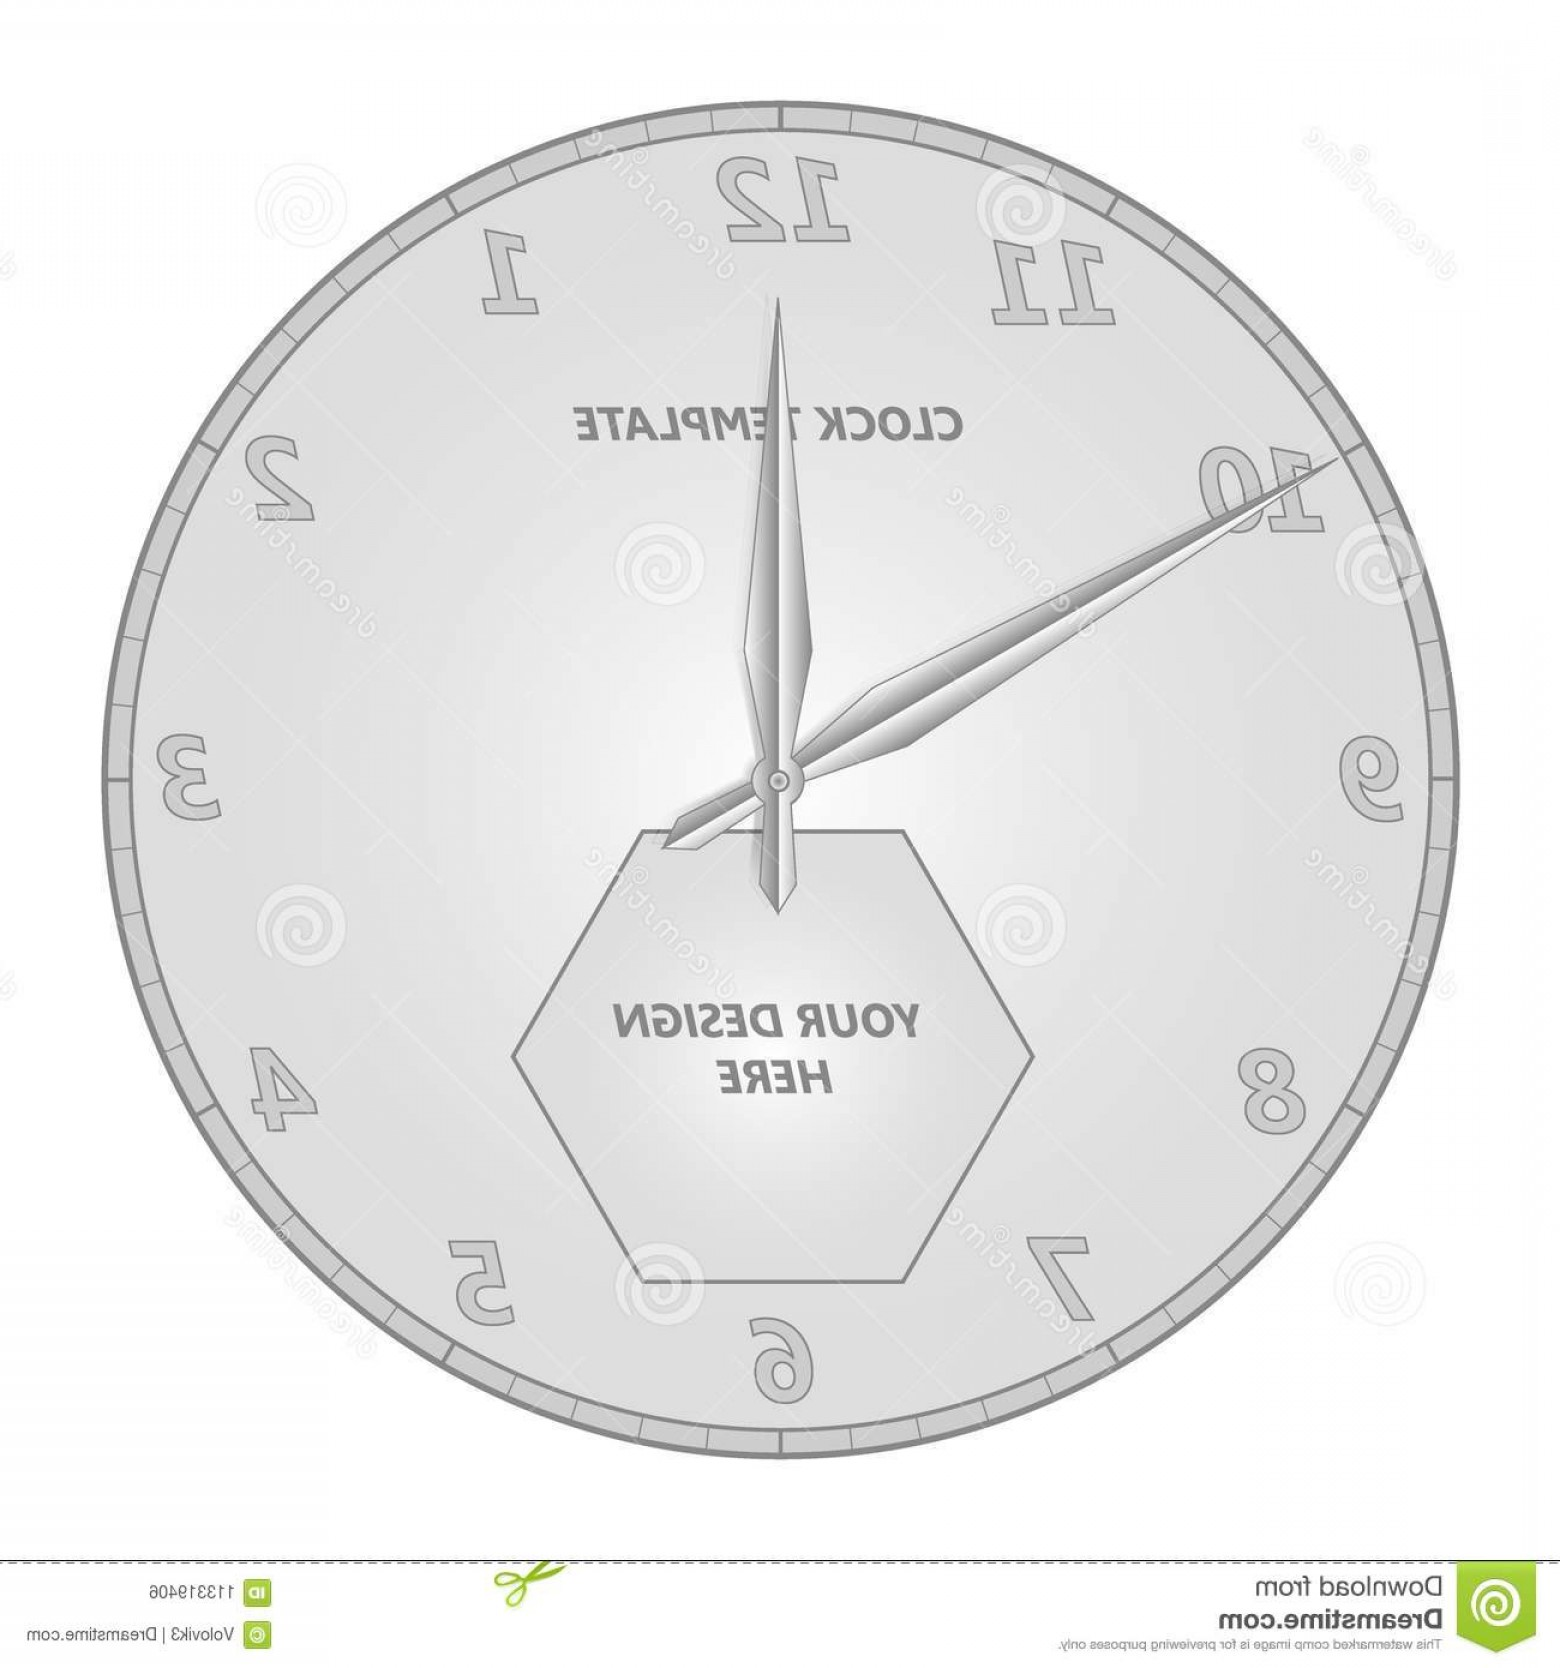 Watch Face Vector: Watch Face Template Hour Minute Hands Watch Face Template Hour Minute Hands Vector Illustration Your Design Image